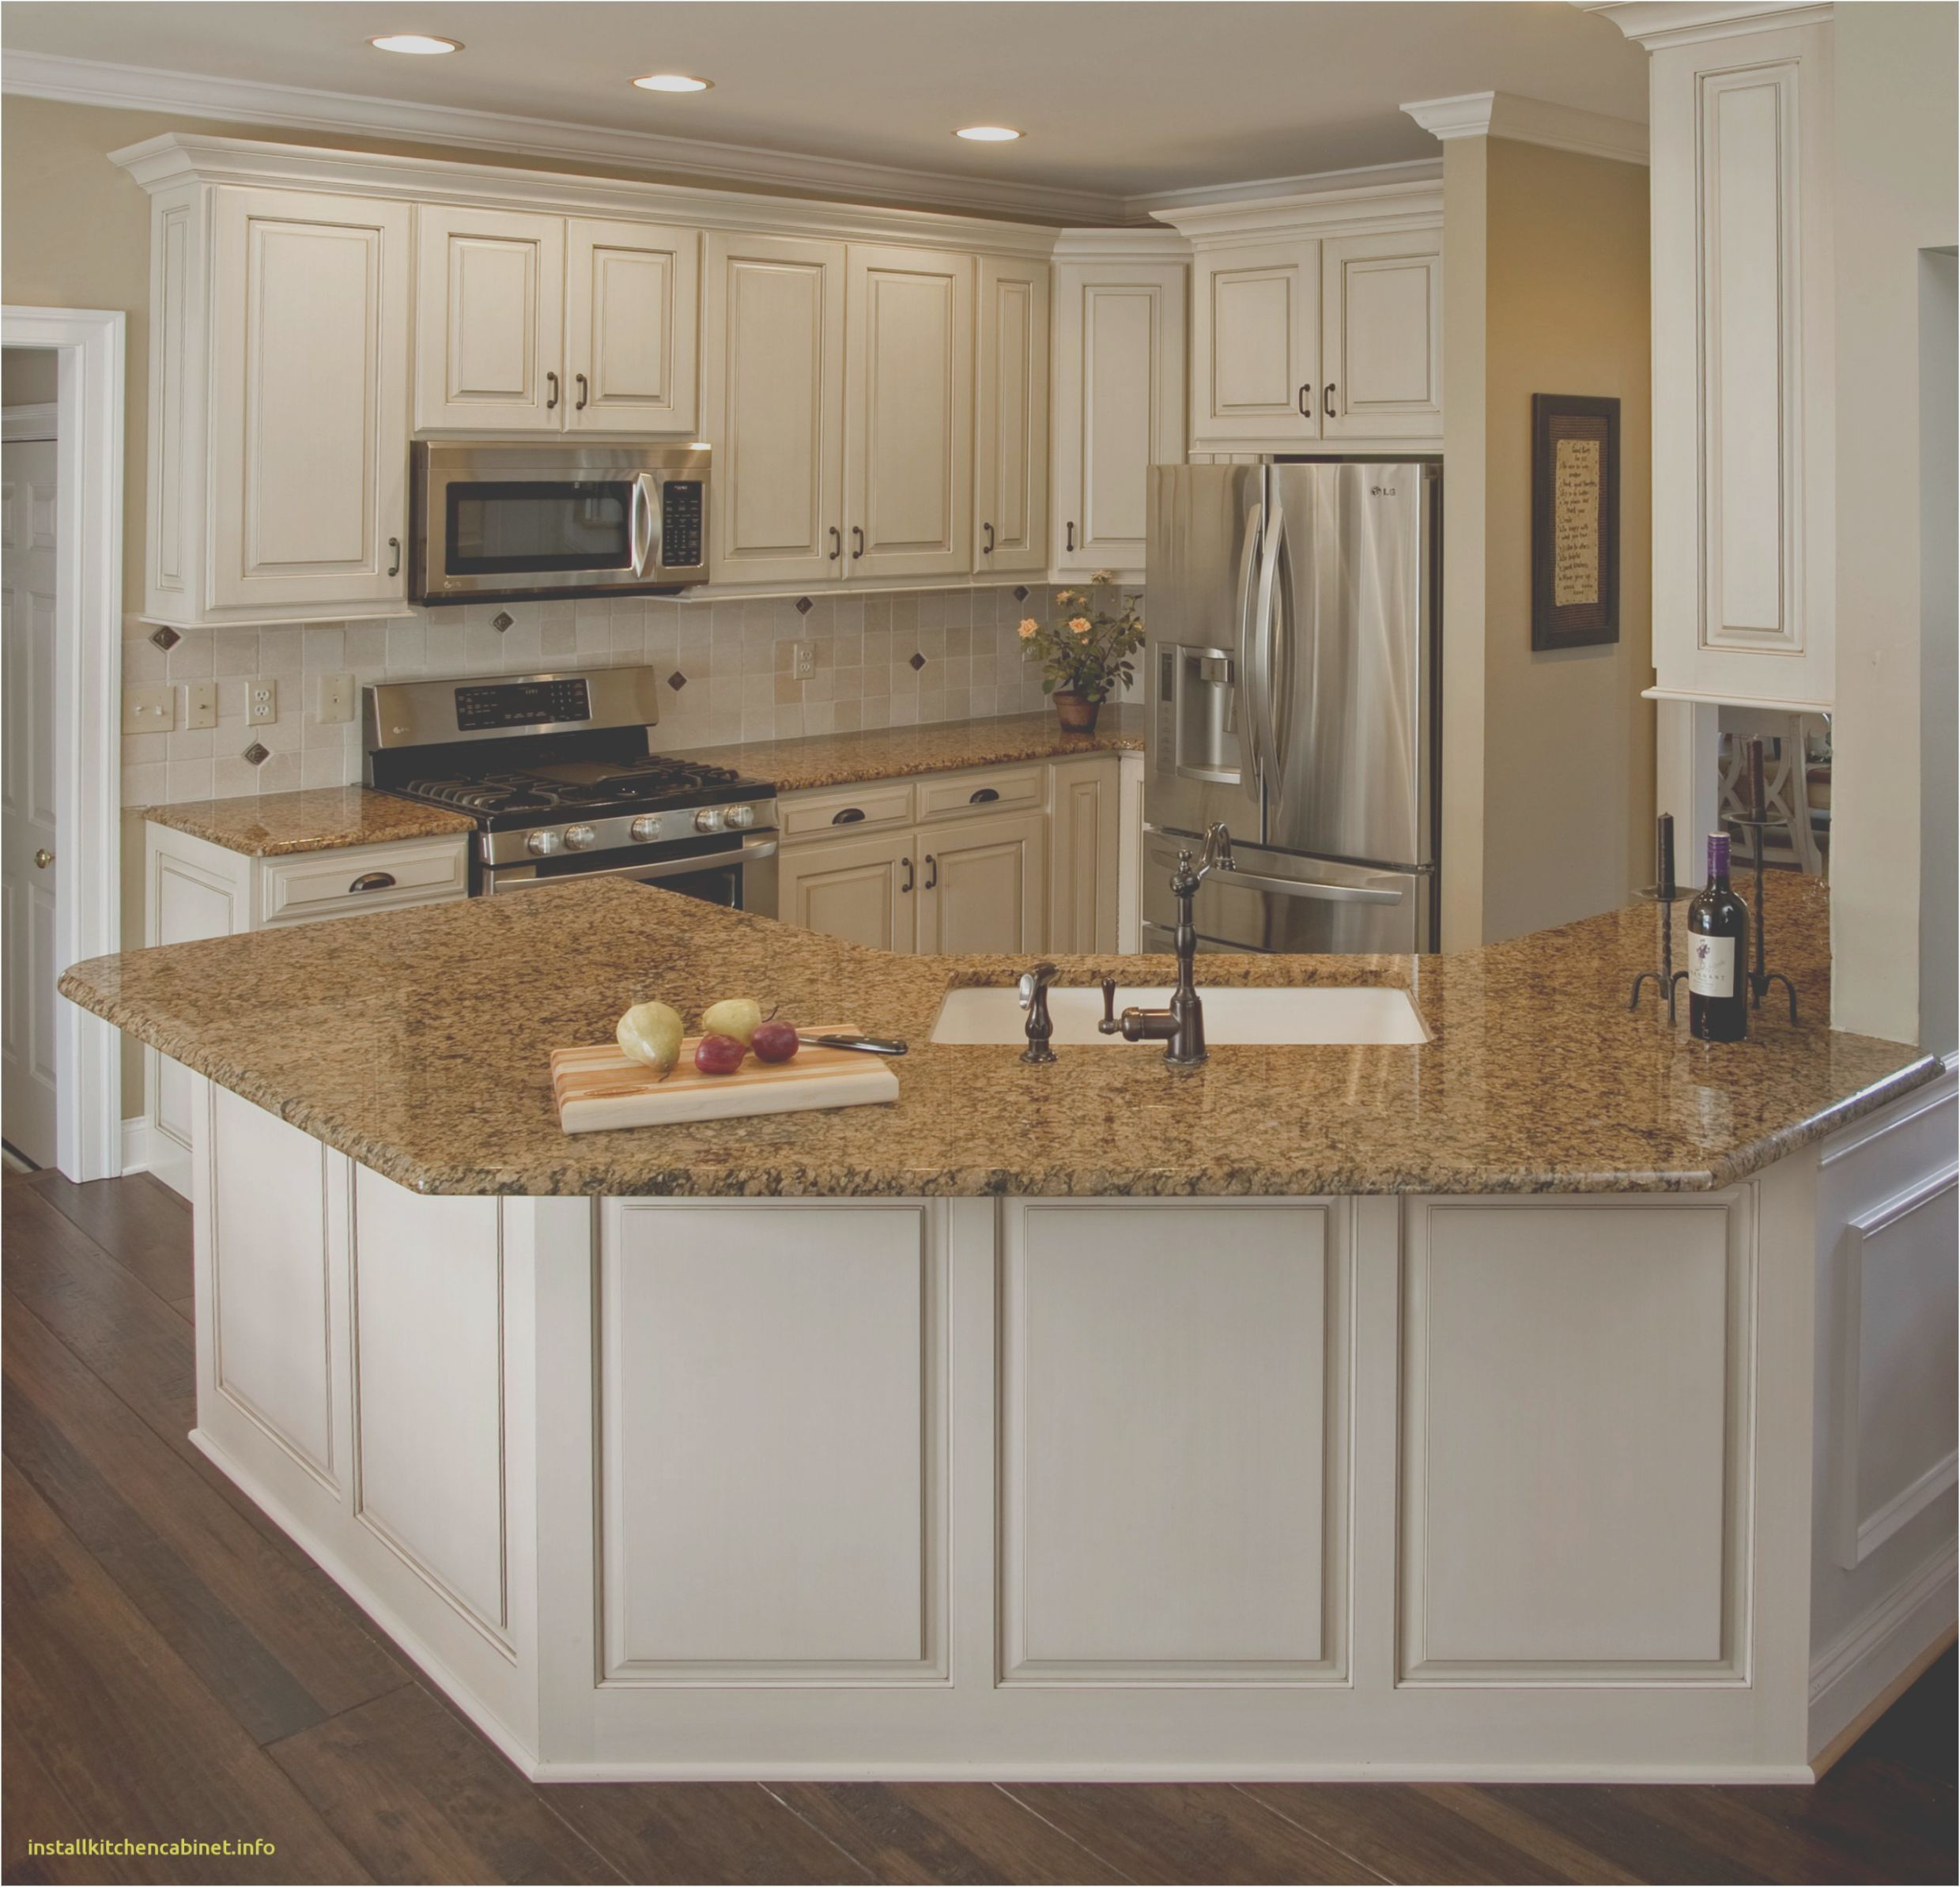 Once Again Cabinet Refacing Transforms The Kitchen Want To Know More About Cabinet Refacing Kitchen Cabinets Refacing Kitchen Cabinets Cost Cabinet Refacing